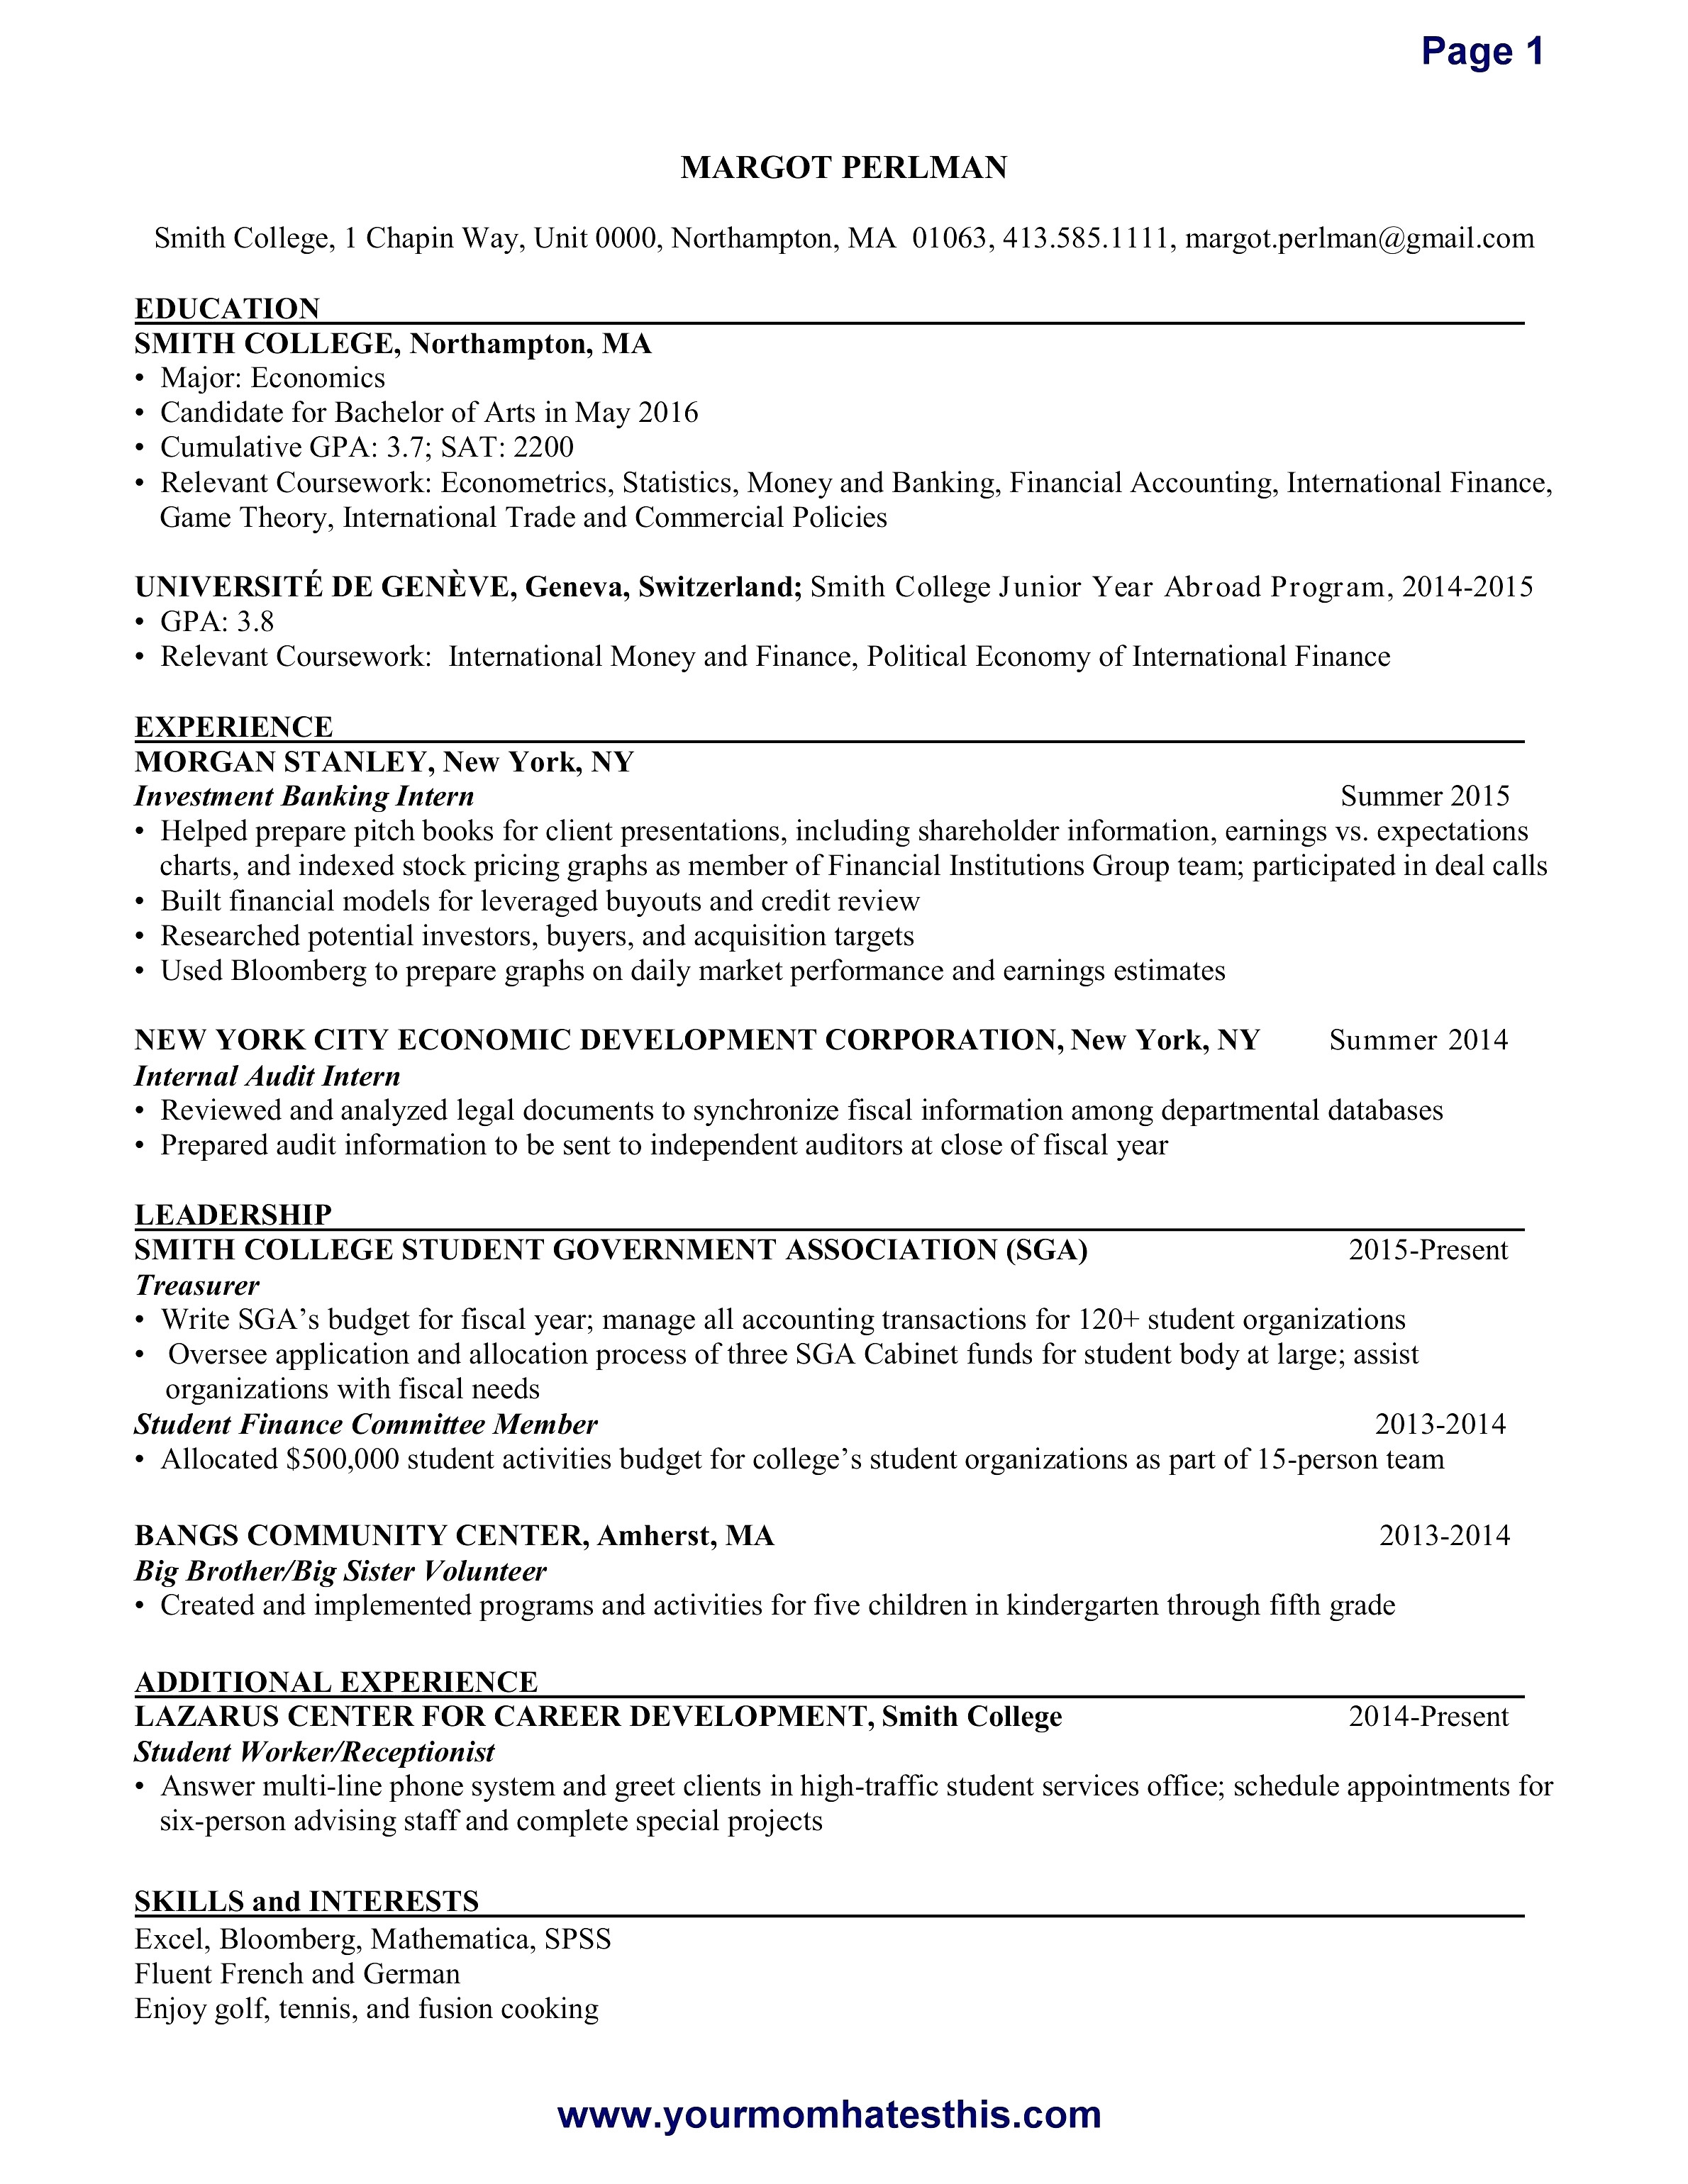 Retail Resume No Experience Sample - 61 Concepts Free Sample Resumes